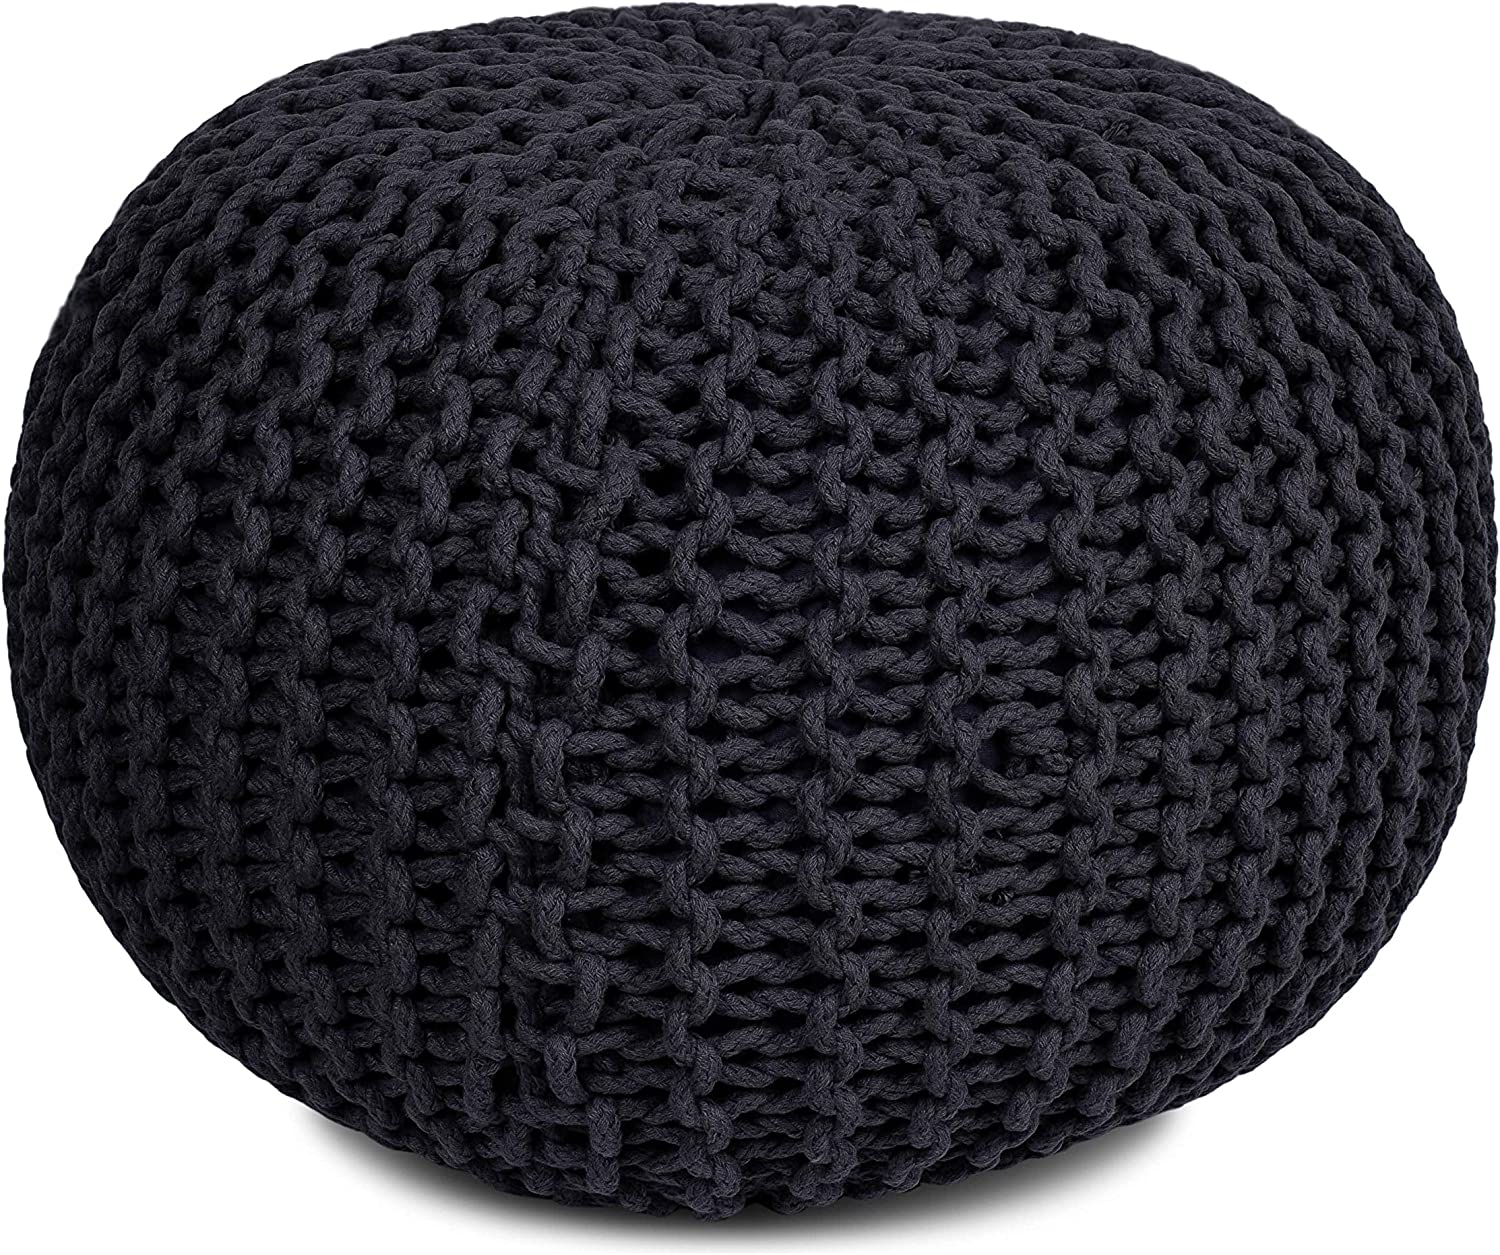 BIRDROCK HOME Round Pouf Foot Stool Ottoman - Knit Bean Bag Floor Chair - Cotton Braided Cord - Great for The Living Room, Bedroom and Kids Room - Small Furniture (Charcoal Grey)